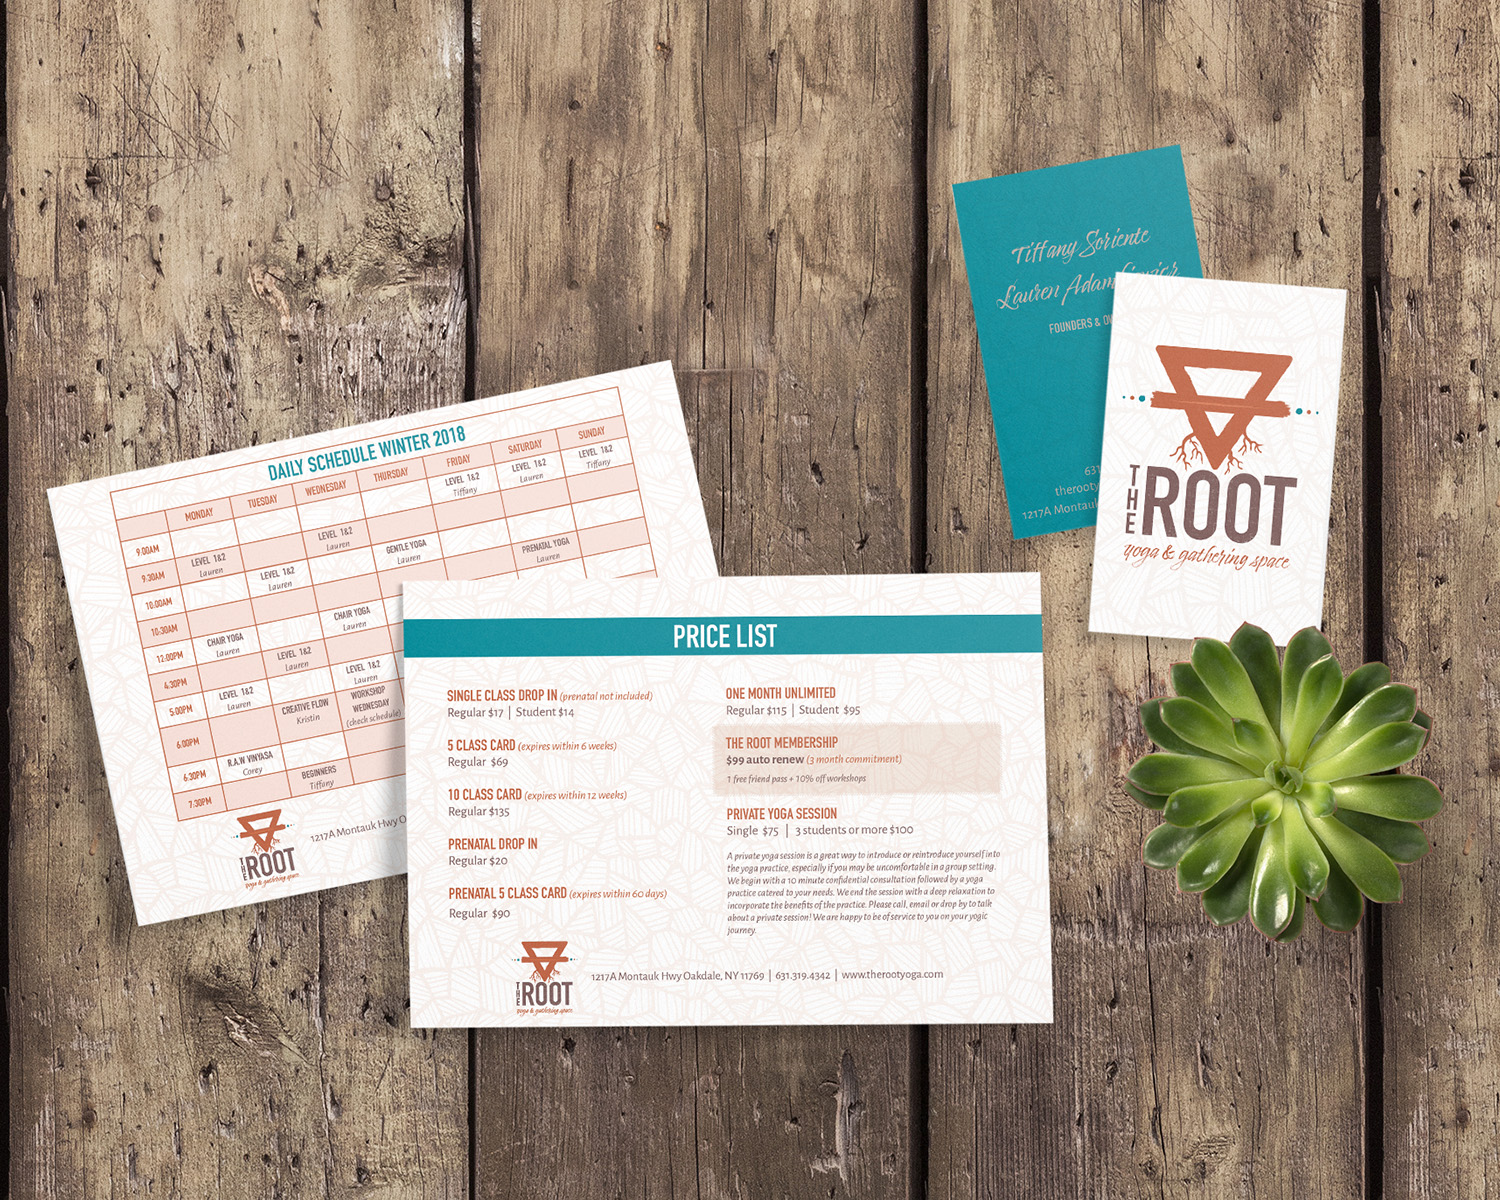 theroot-printcollateral2-1500x1200.jpg